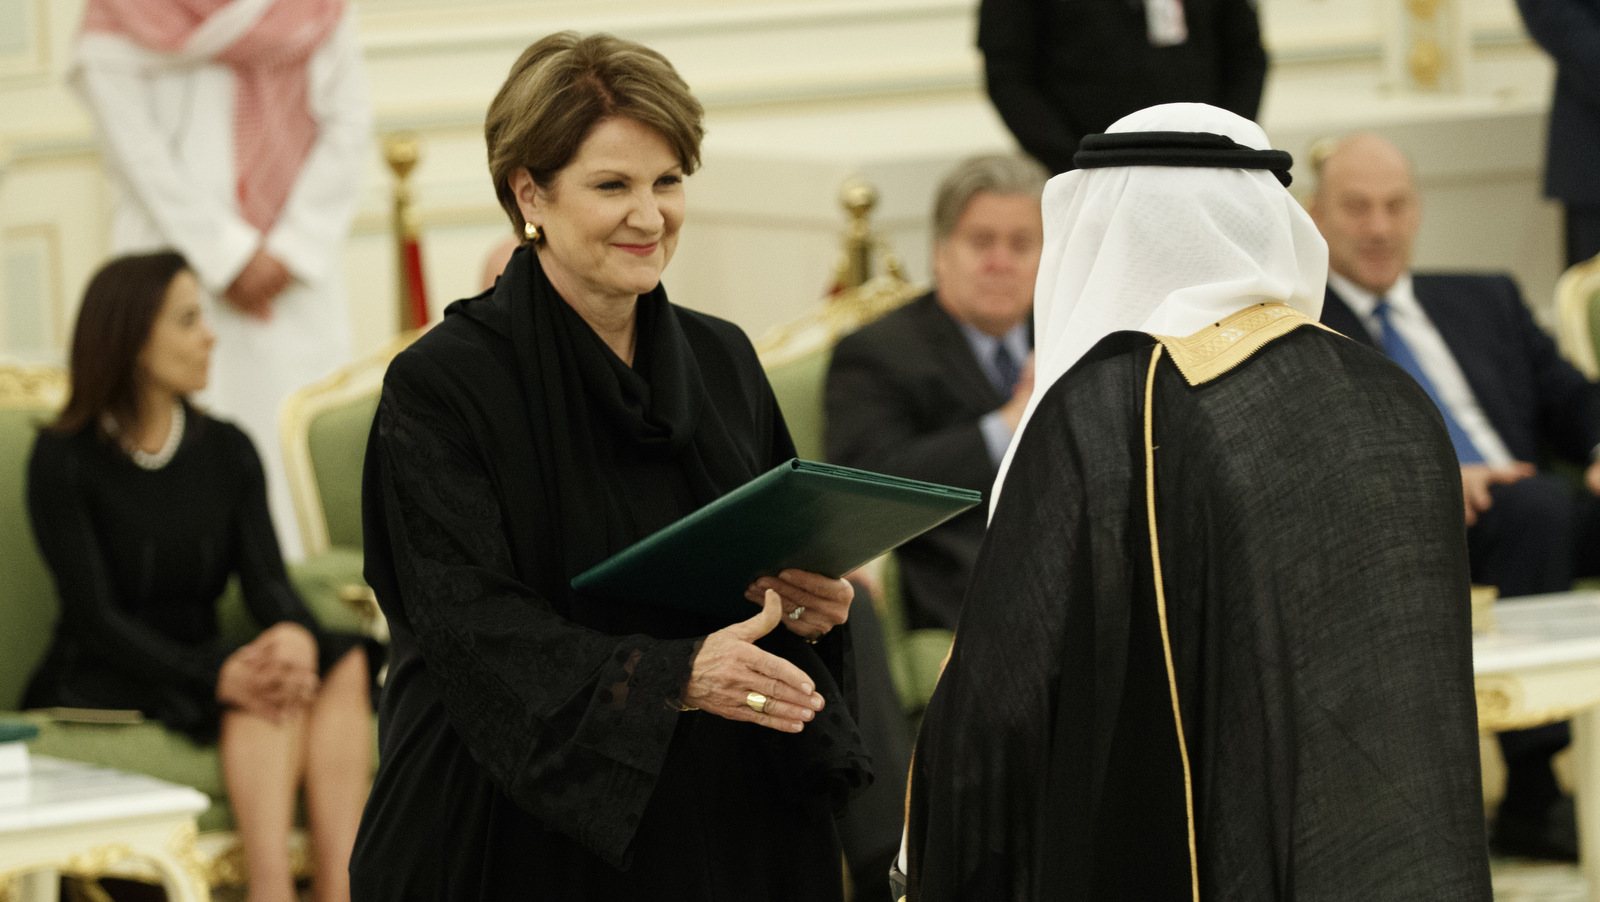 Lockheed Martin CEO Marillyn Hewson participates in a signing ceremony between President Donald Trump and Saudi King Salam at the Royal Court Palace, Saturday, May 20, 2017, in Riyadh. (AP/Evan Vucci)